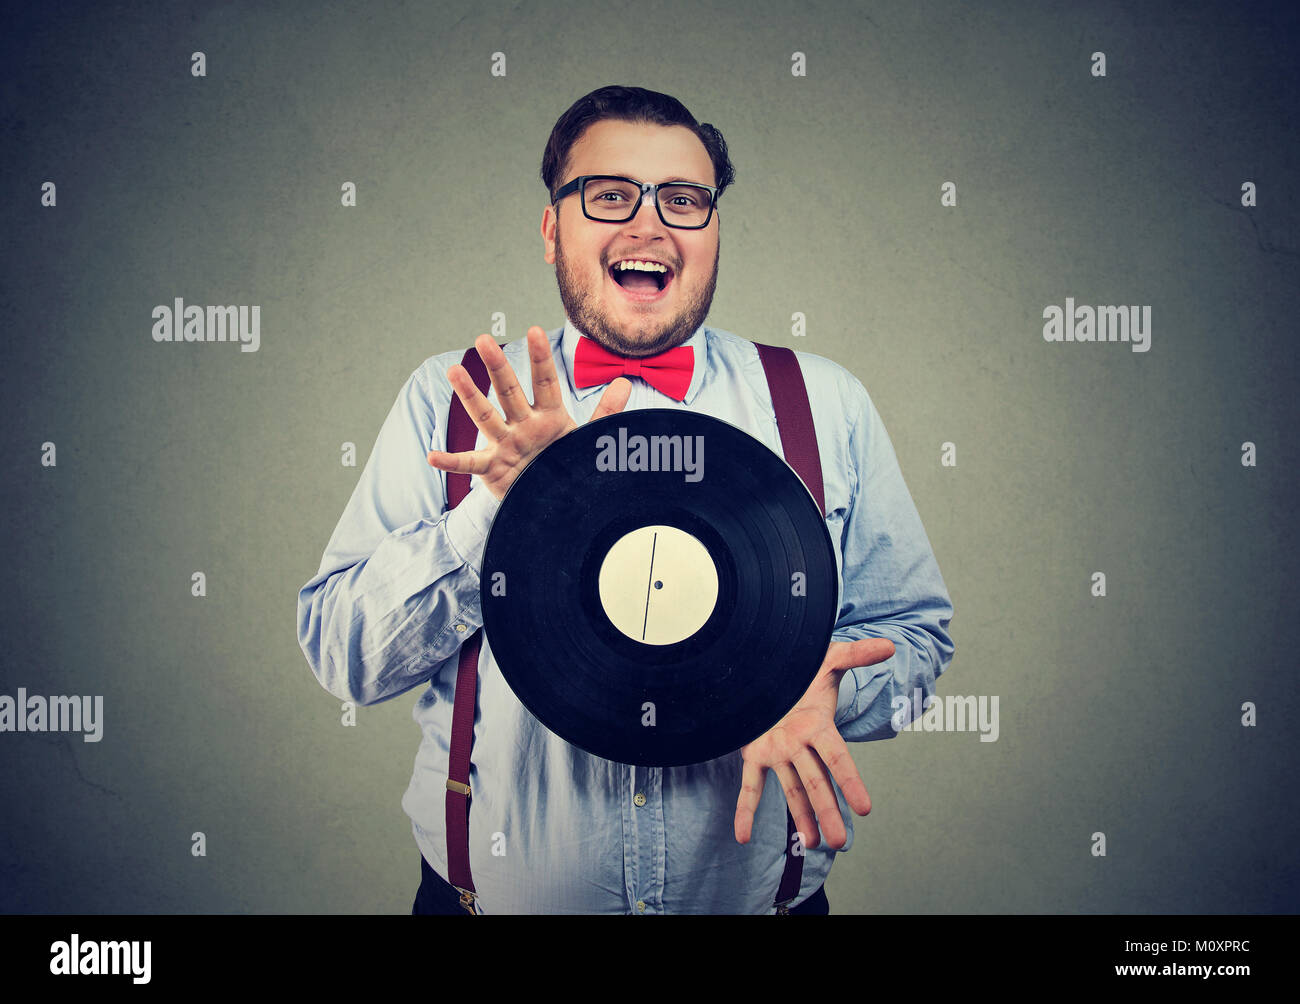 Chubby happy man in bow-tie happy with vinyl record obsessed with music. - Stock Image